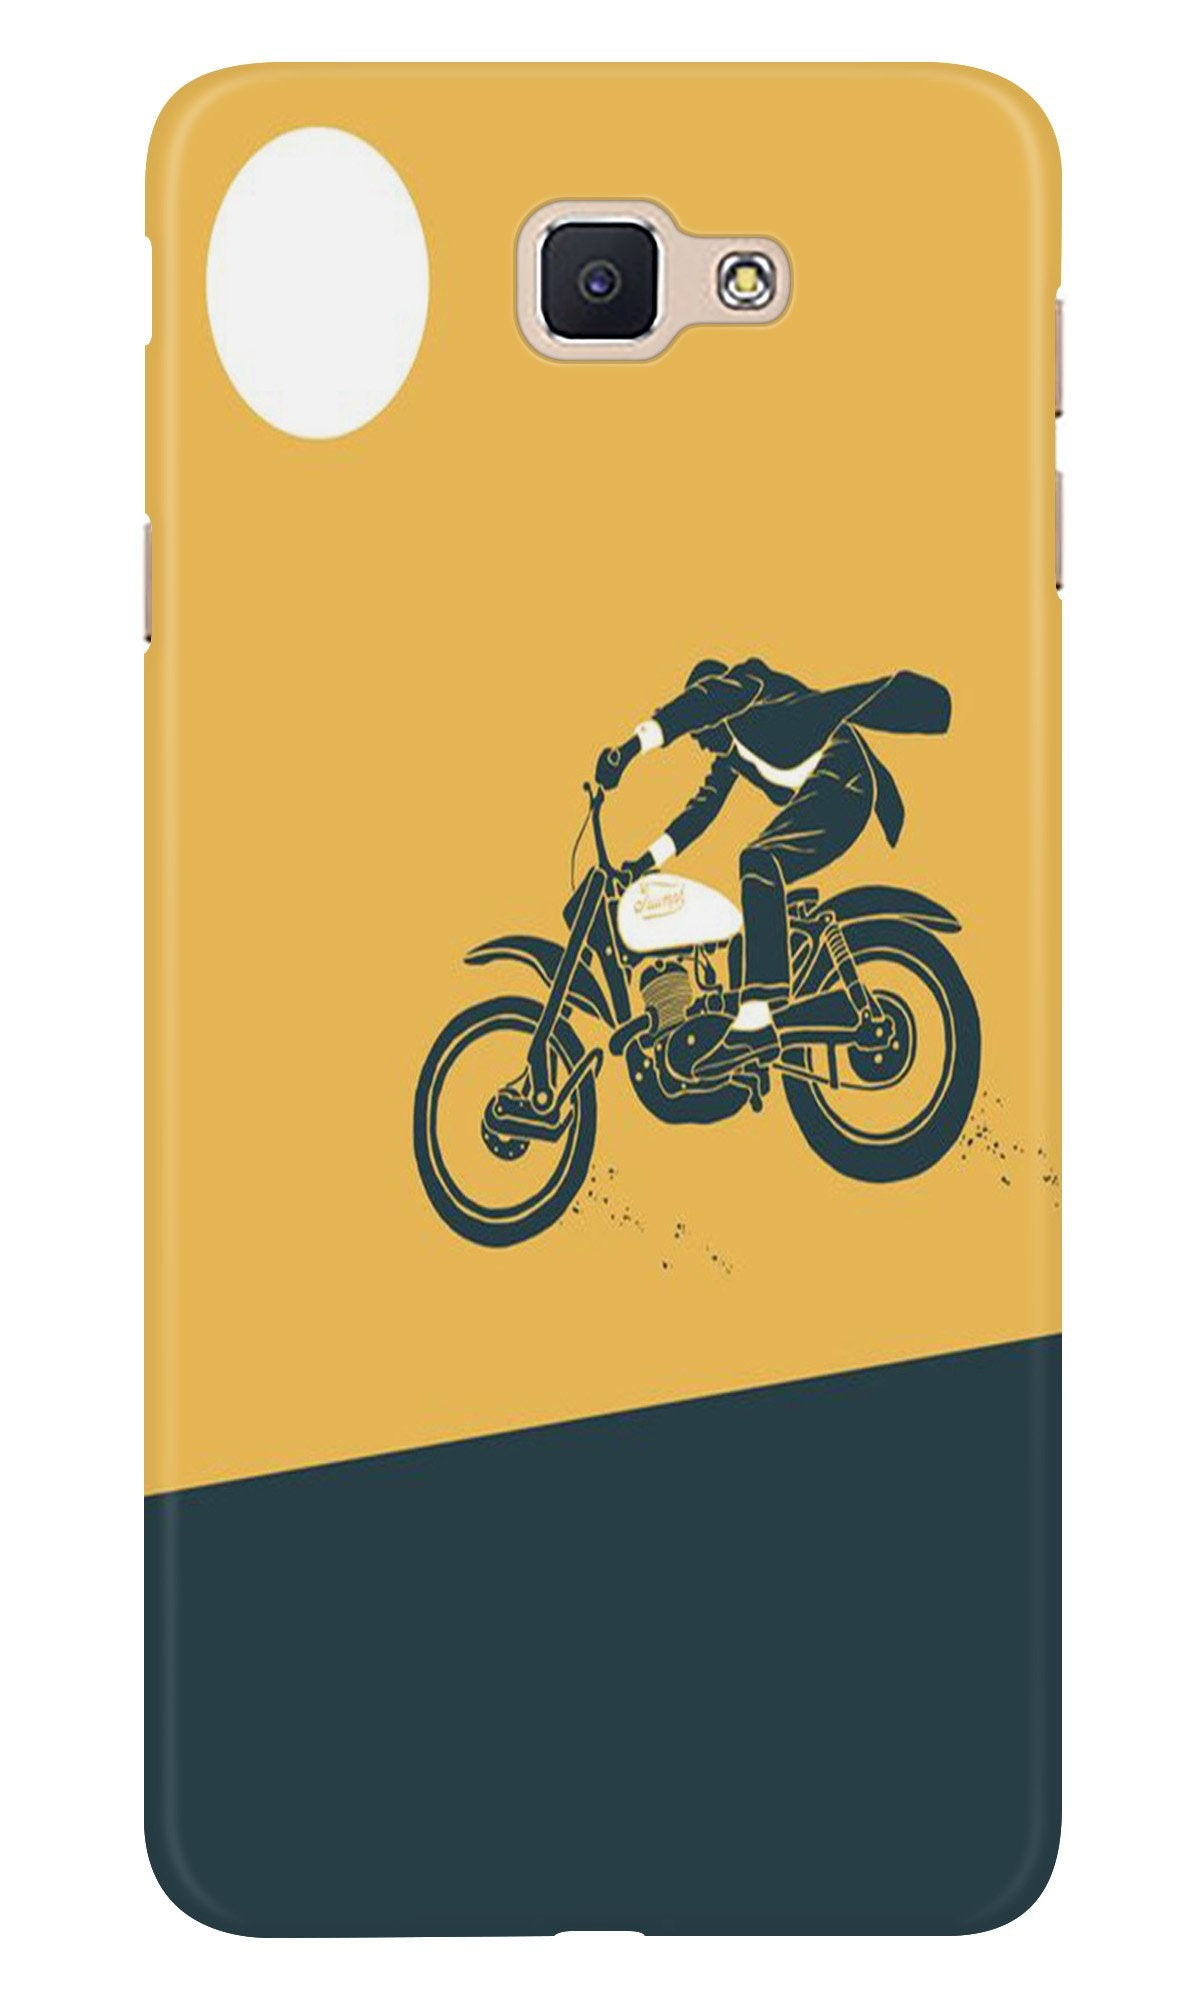 Bike Lovers Case for Samsung Galaxy A9 Pro (Design No. 256)